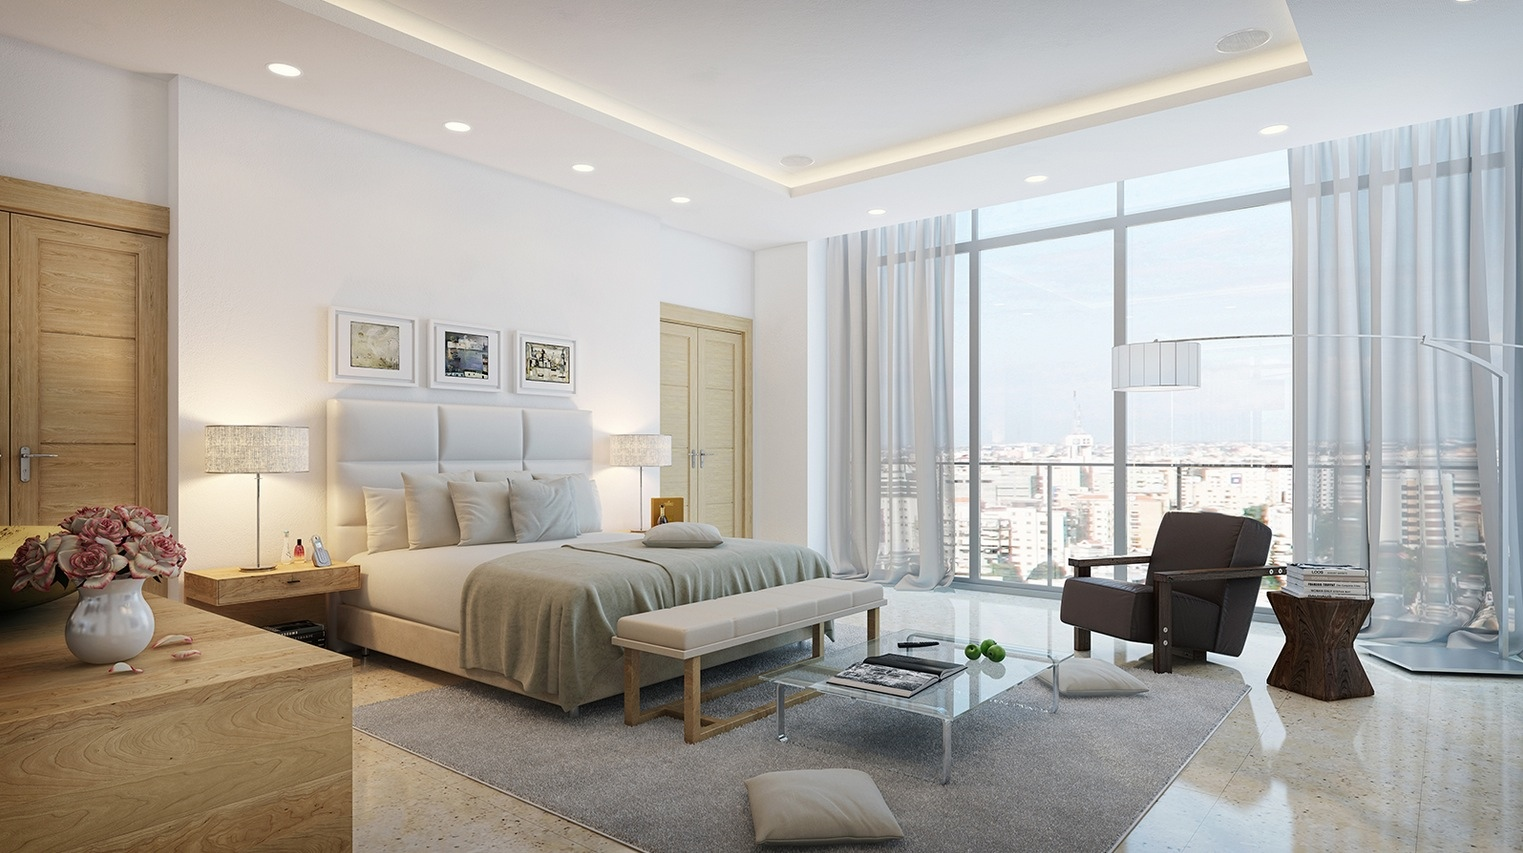 Modern Bedroom Design Ideas for Rooms of Any Size on Simple Best Bedroom Design  id=48045